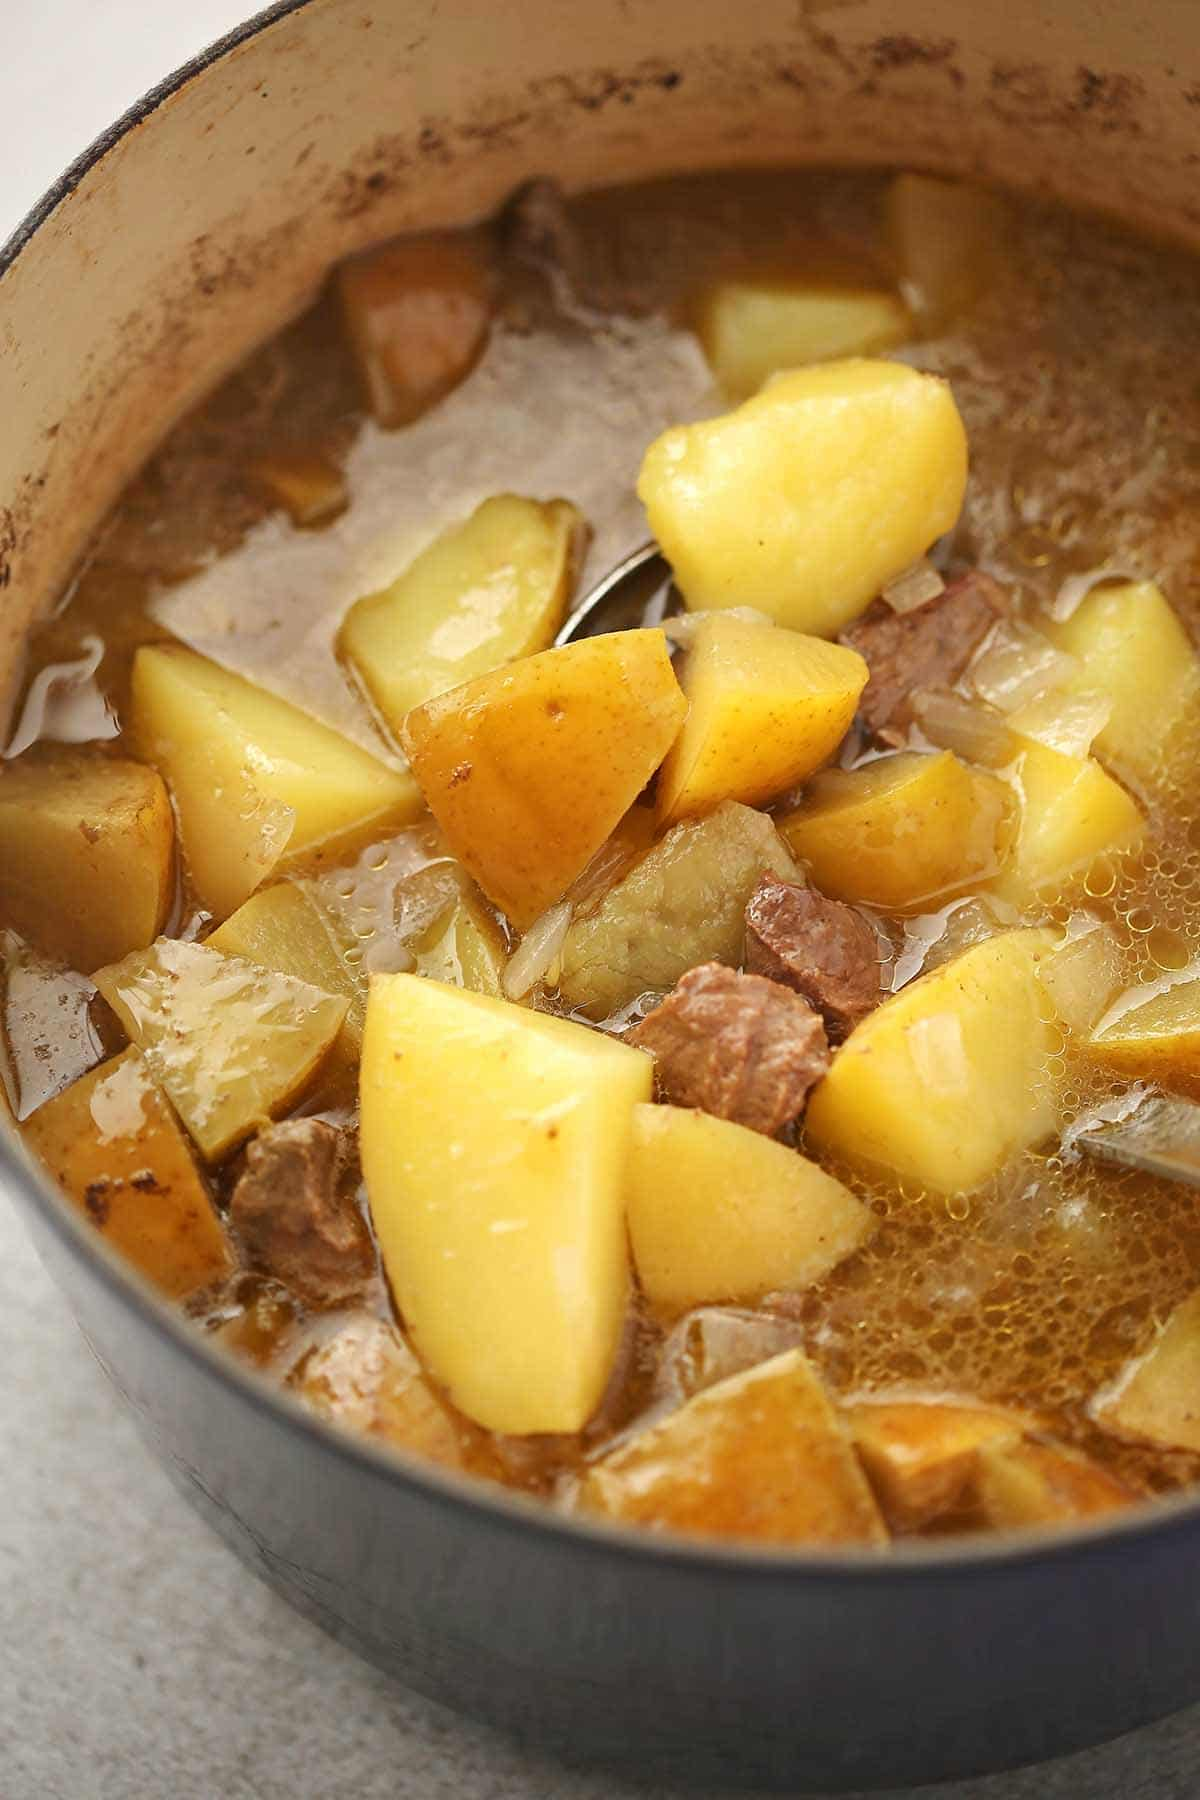 close up shot of the dutch oven pot filled with cooked potatoes, meat and broth